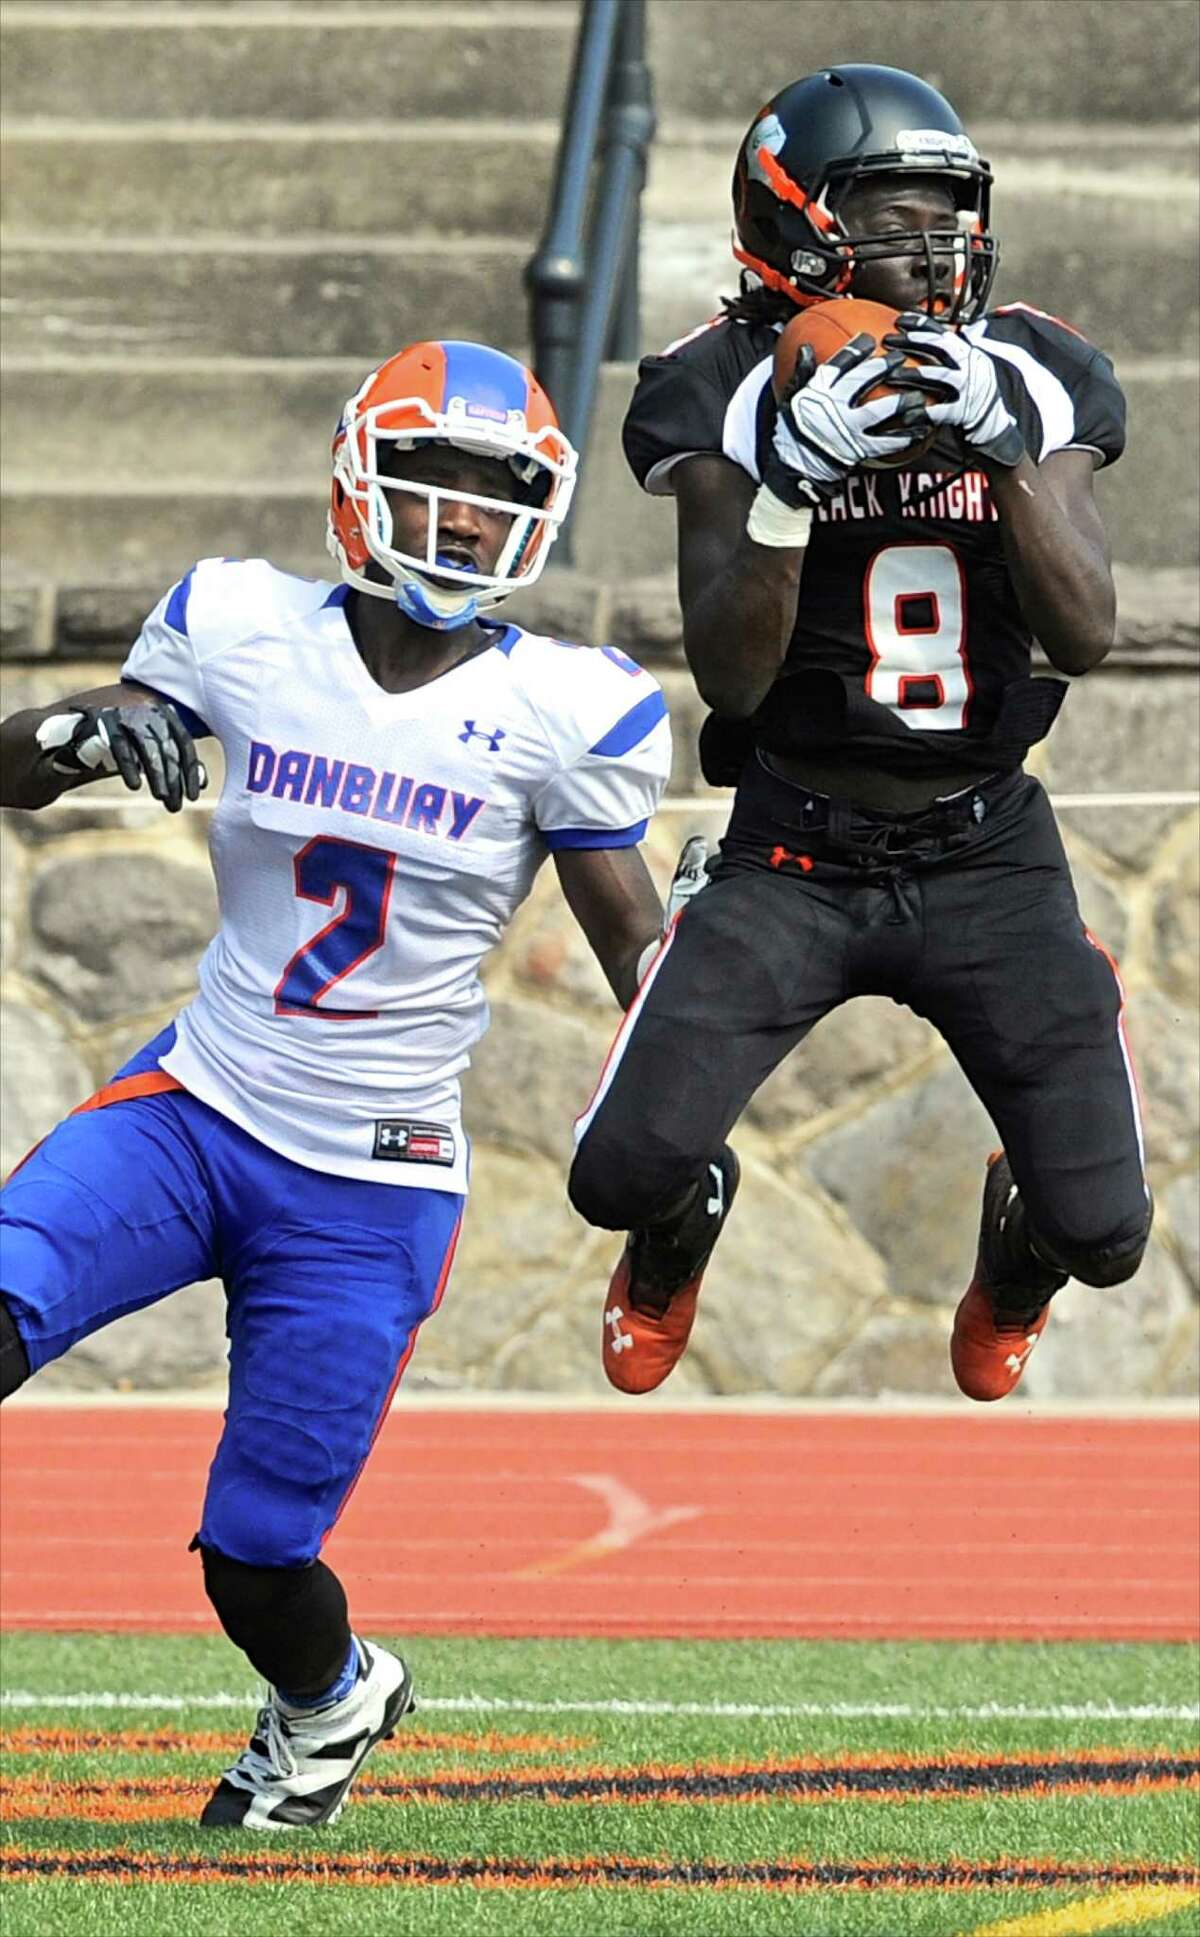 Stamford's Charles Razor (8) intercepts a pass intended for Danbury's Massiah Crandell (2) in the end zone in the high school football game between Danbury and Stamford high schools, Saturday afternoon, September 10, 2016, at Stamford High School, Stamford, Conn.